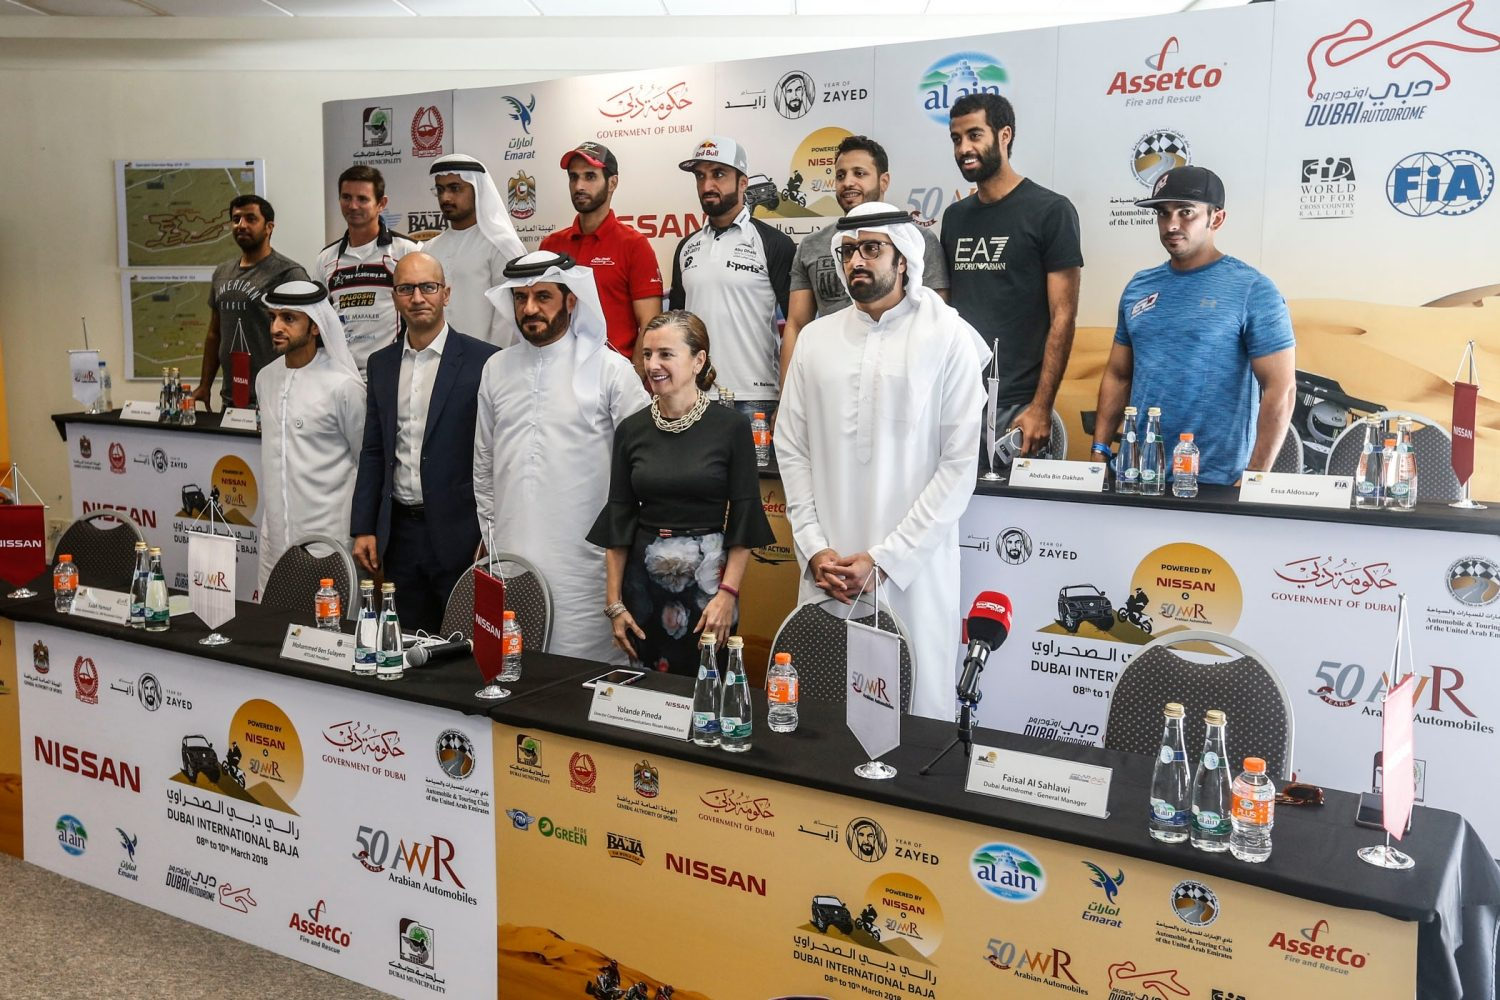 Back row (L-R): Abdulla Bin Dakhan, Shannon O'Connor, Mansour Al Helei, Sheikh Khalid Al Qassimi, Mohammed Al Balooshi, Yasir Seaidan, Abdulla Al Heraiz, Essa Al Dossary | Front row (L-R): Tariq Ahmed Al Wahedi, CEO, Agthia Group PJSC&#x3b; Salah Yamout, Director of Sales & Marketing for Nissan, Infiniti & Renault - ‎Arabian Automobiles&#x3b; Mohammed Ben Sulayem, President of the ATCUAE and Emirates Motor Sport Federation&#x3b; Yolande Pineda - Director Corporate Communications Nissan Middle East&#x3b; Faisal Al Sahlawi, General Manager, Dubai Autodrome